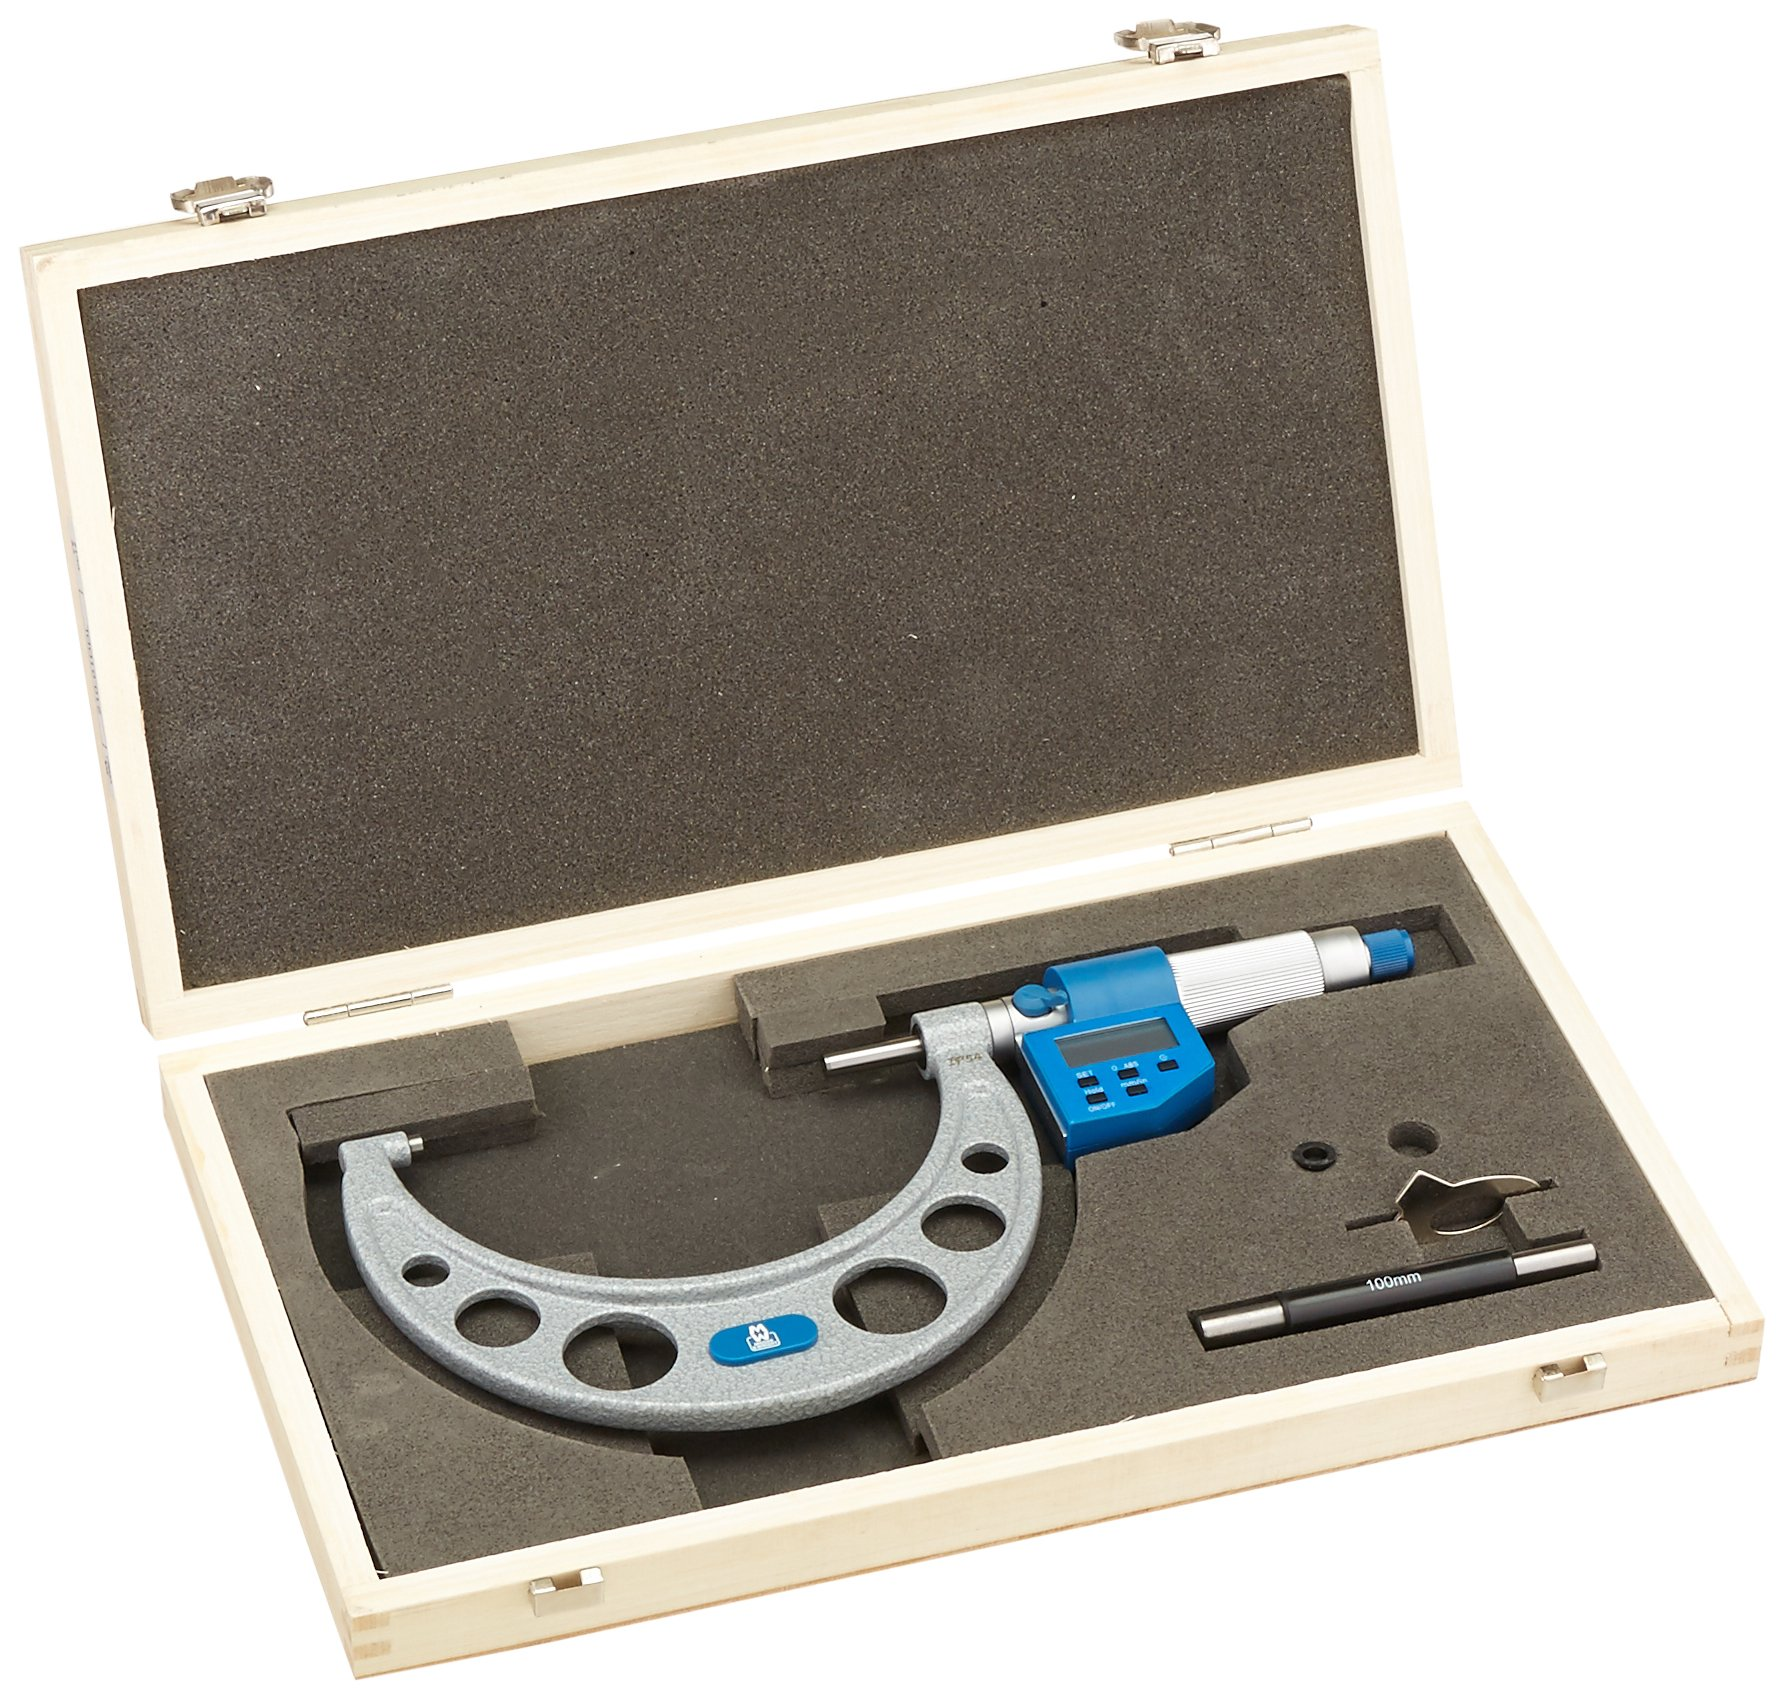 100-125mm (4-5inch) Moore and Wright Digital Micrometer MW210-01DDL